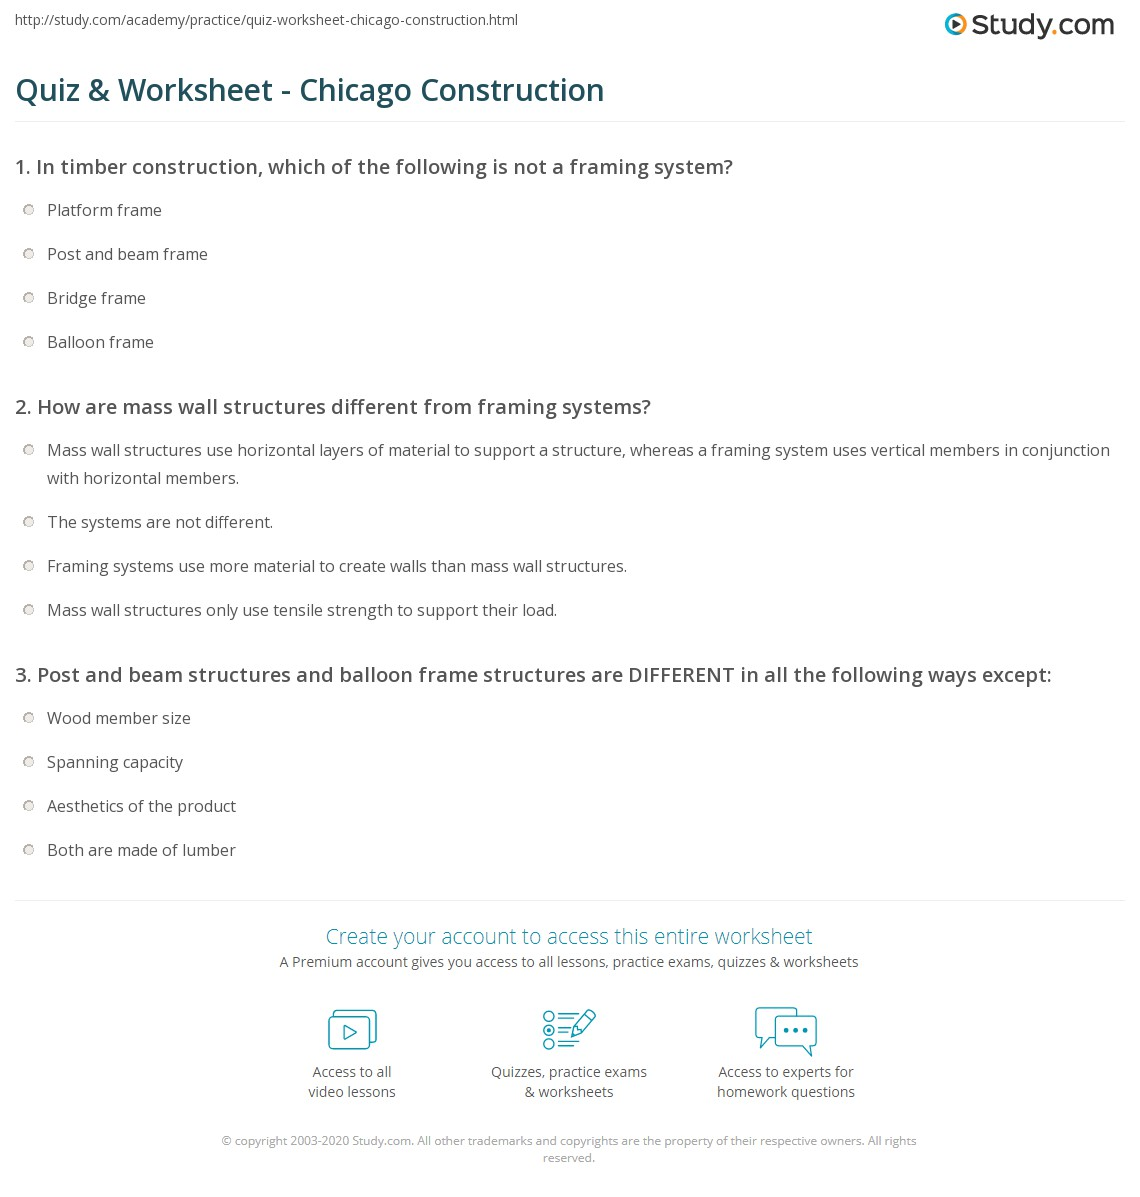 Quiz & Worksheet - Chicago Construction | Study.com